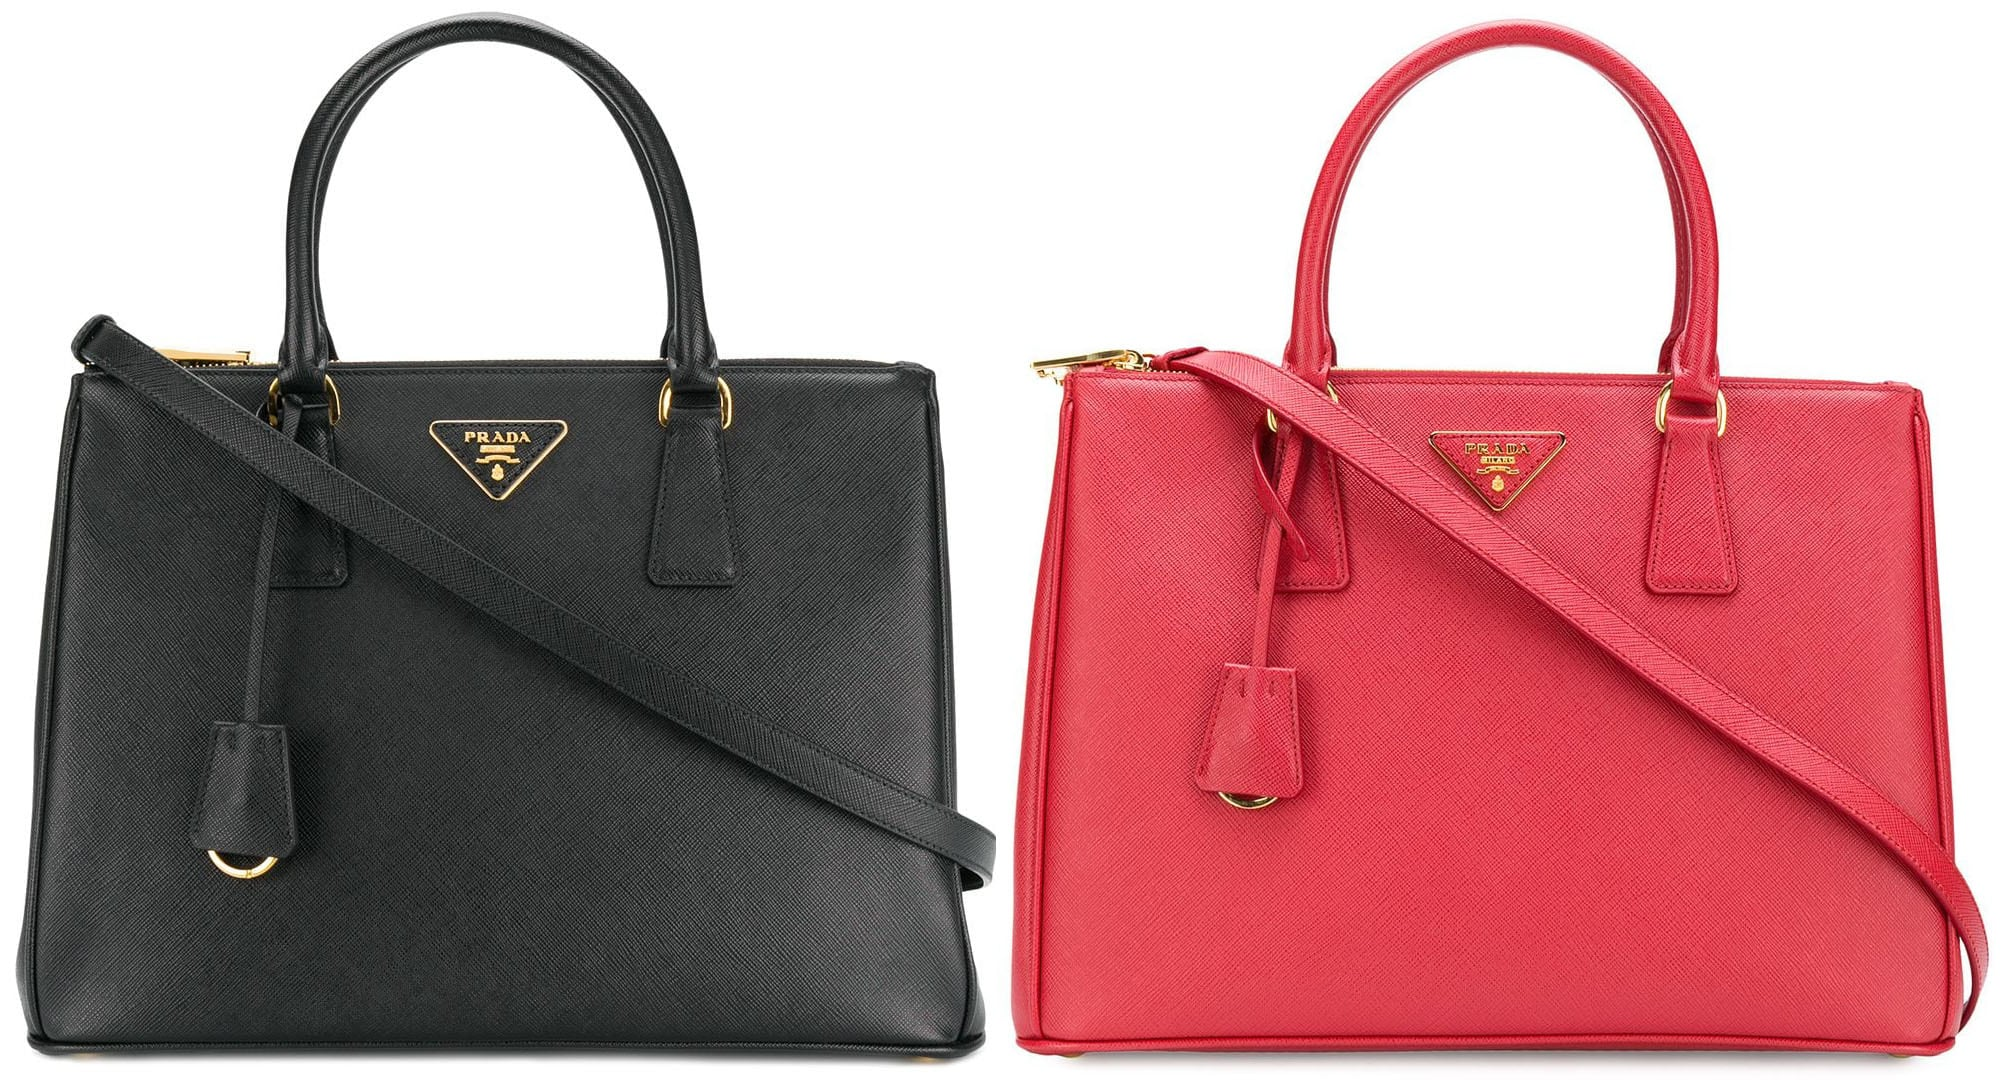 A cult-favorite Prada bag, the Galleria is a timeless bag that features a classic shape and the fashion house's neat branding